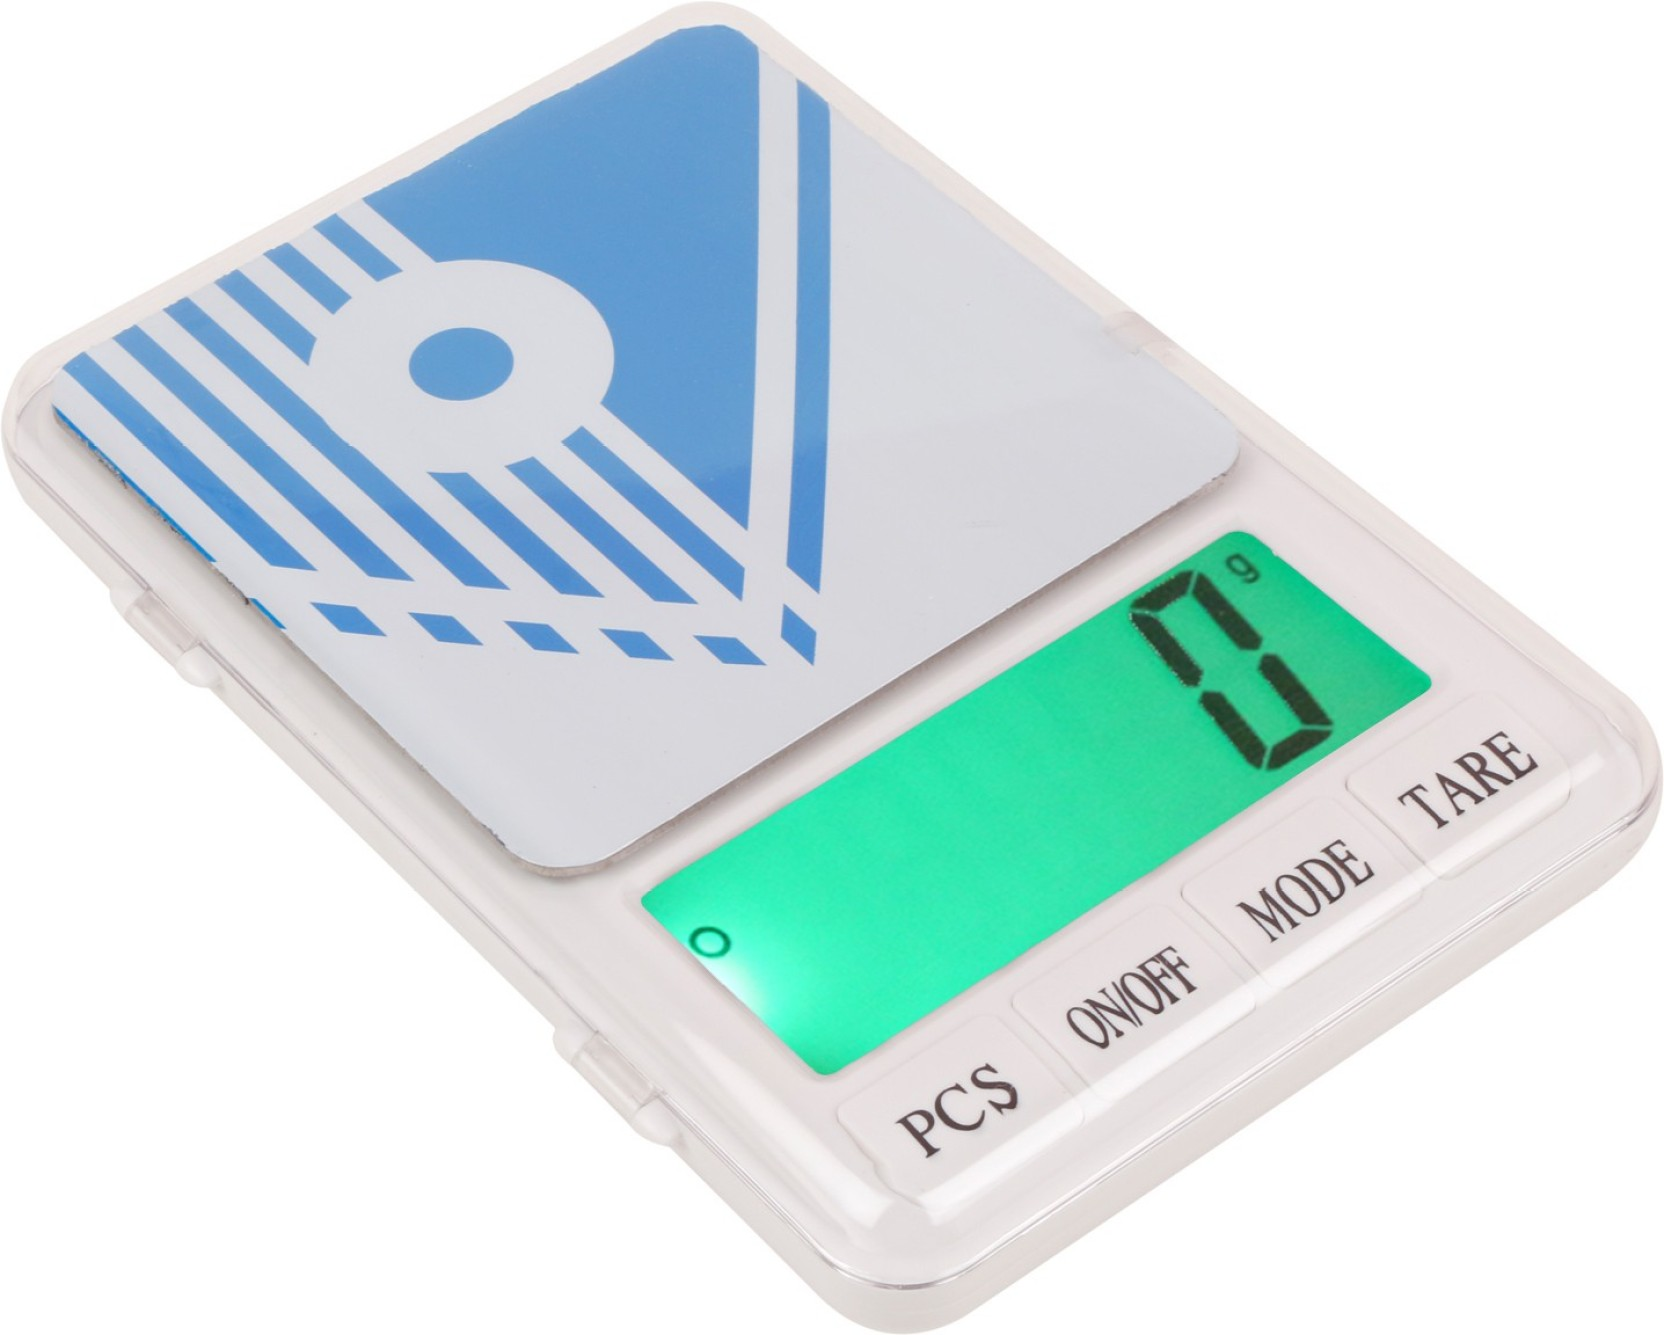 Ming Heng Electronic Kitchen MH-887 Weighing Scale Price in India ...